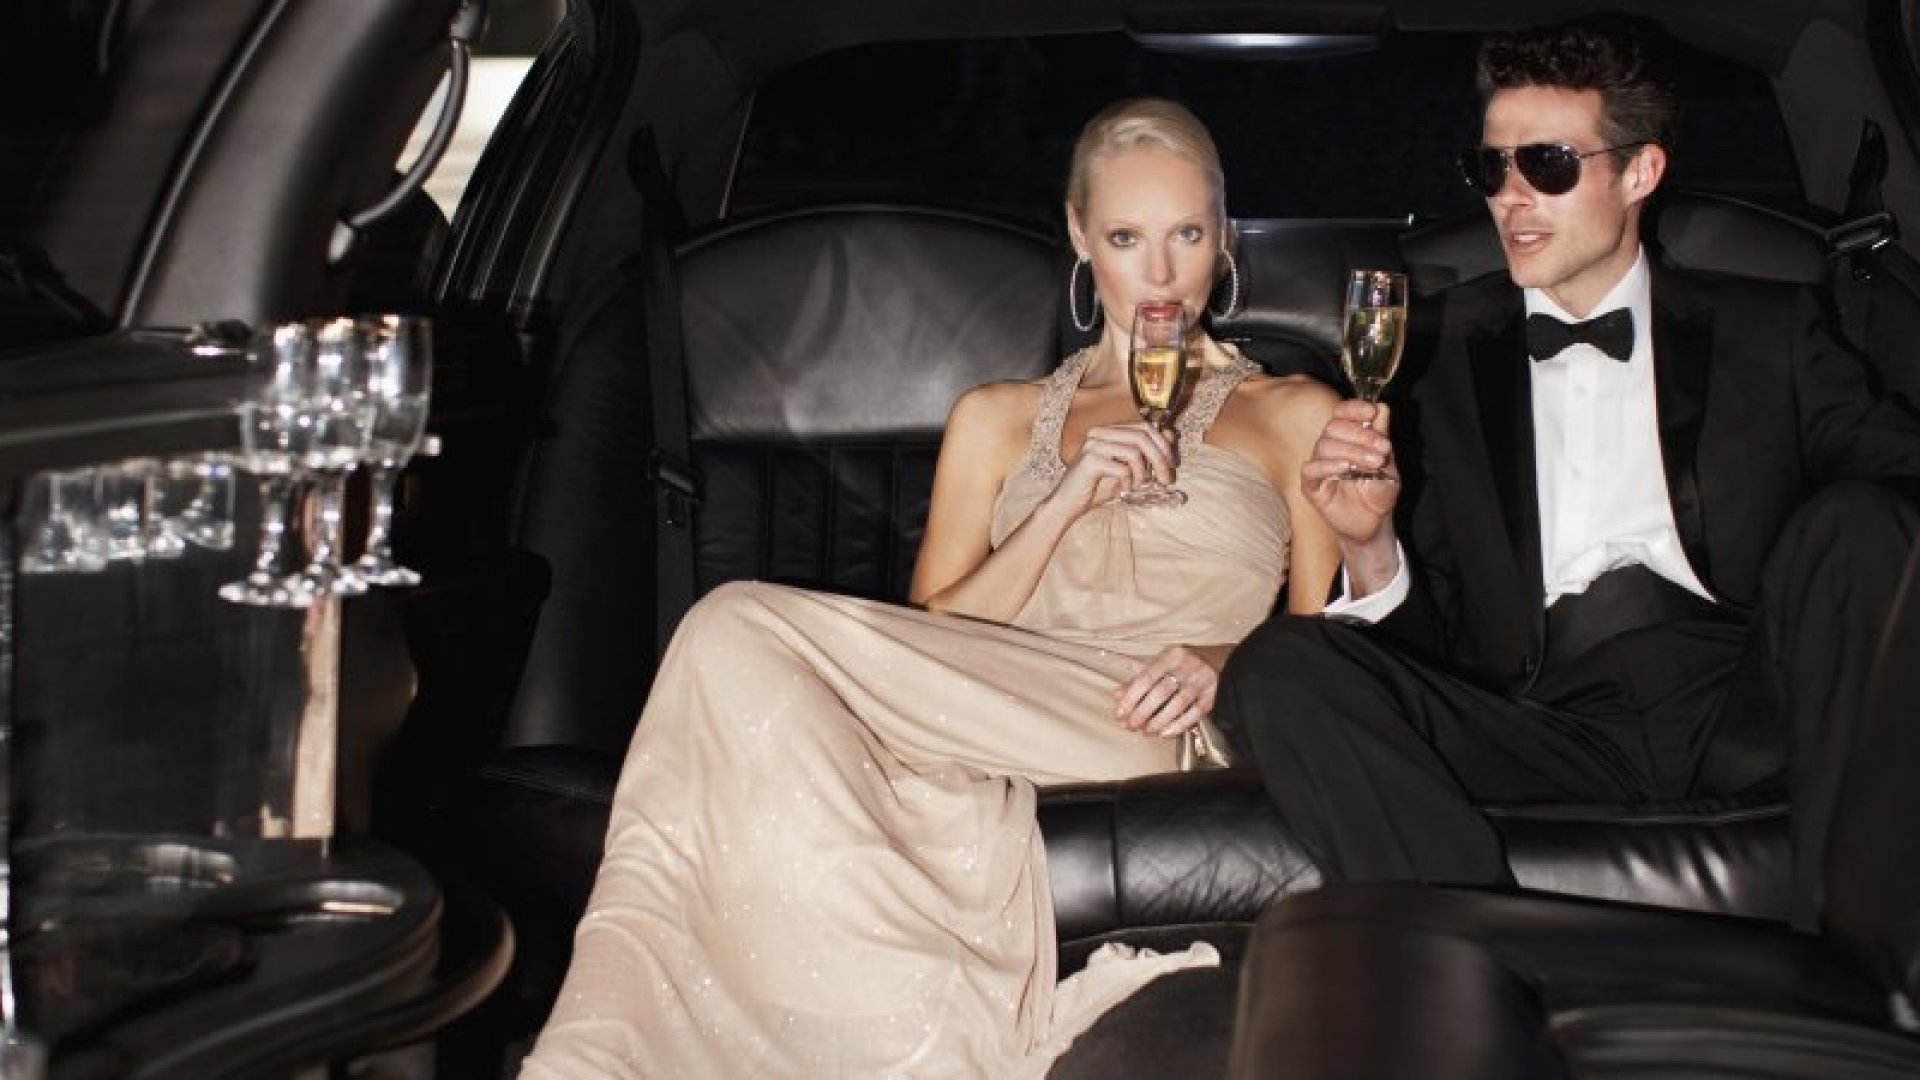 The Surprising Things Wealthy People Spend Their Money On